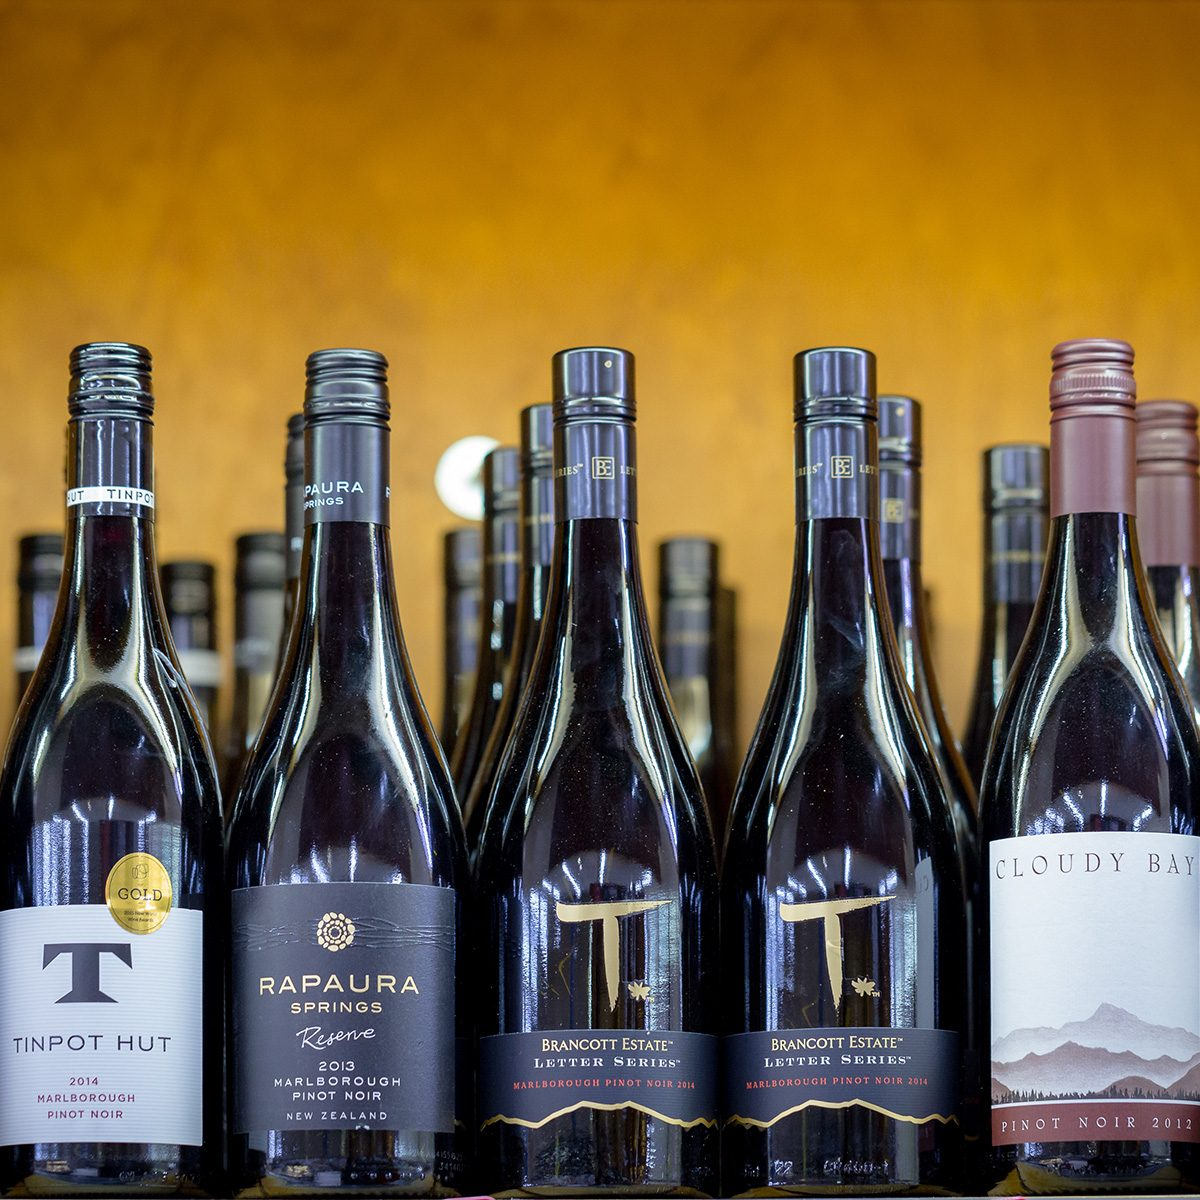 The Best Wines to Pair with Your Next Turkey Dinner